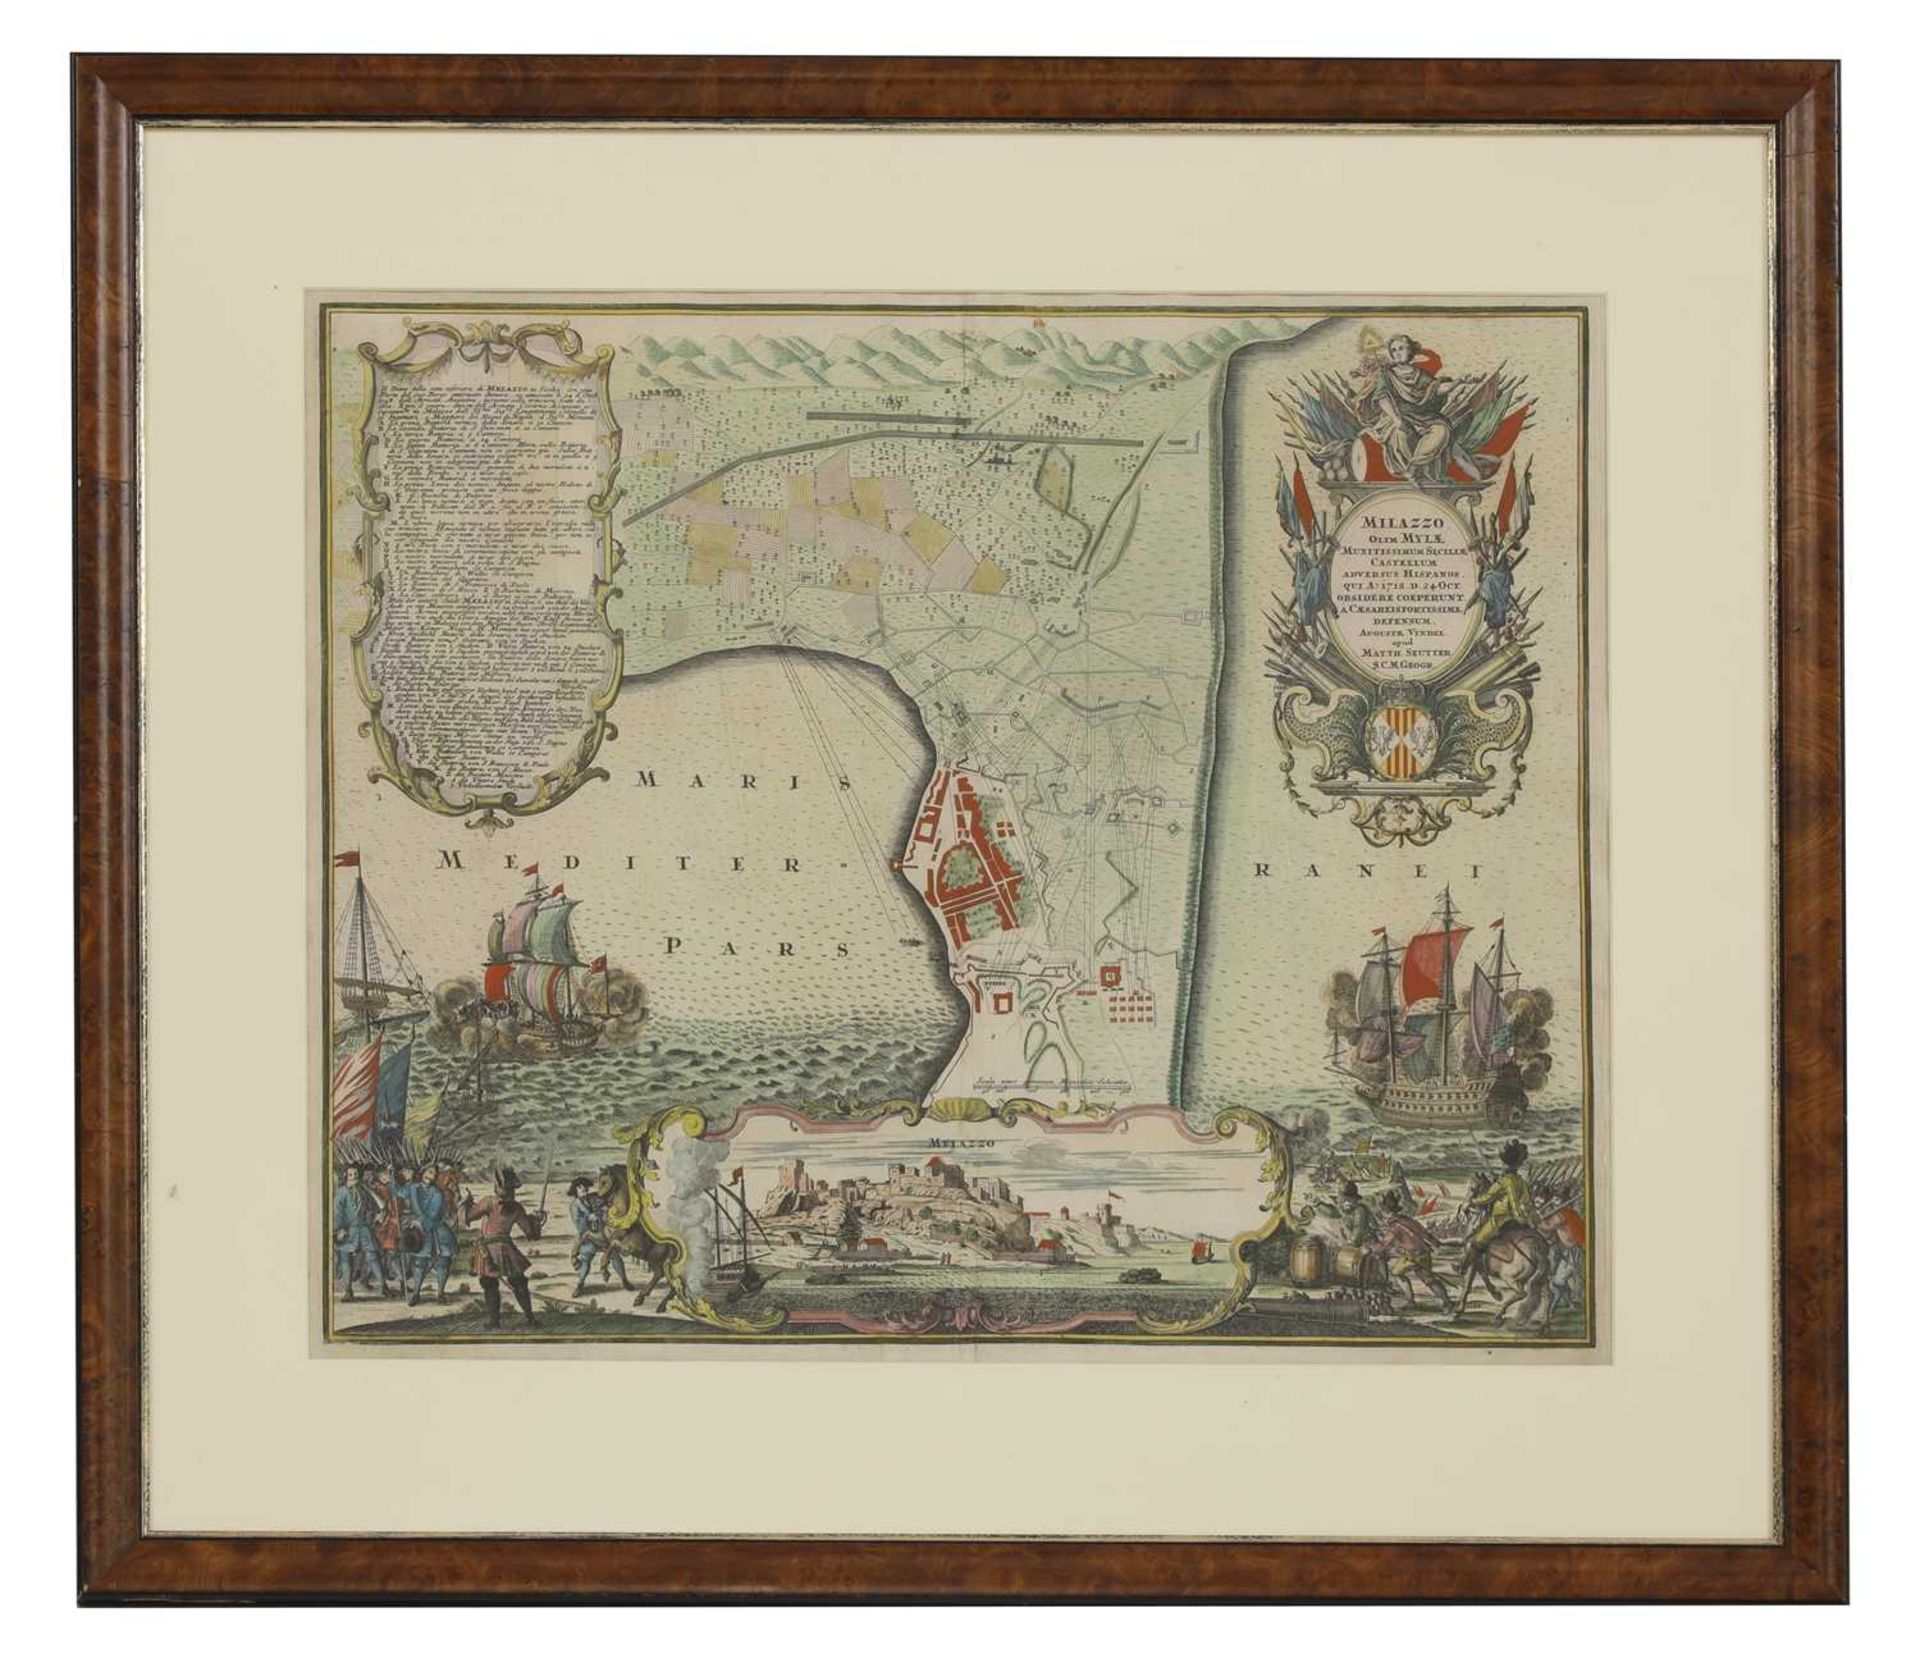 'Milazzo...Sicilia', a hand-coloured map dated 24 Oct, 1718, - Image 2 of 3